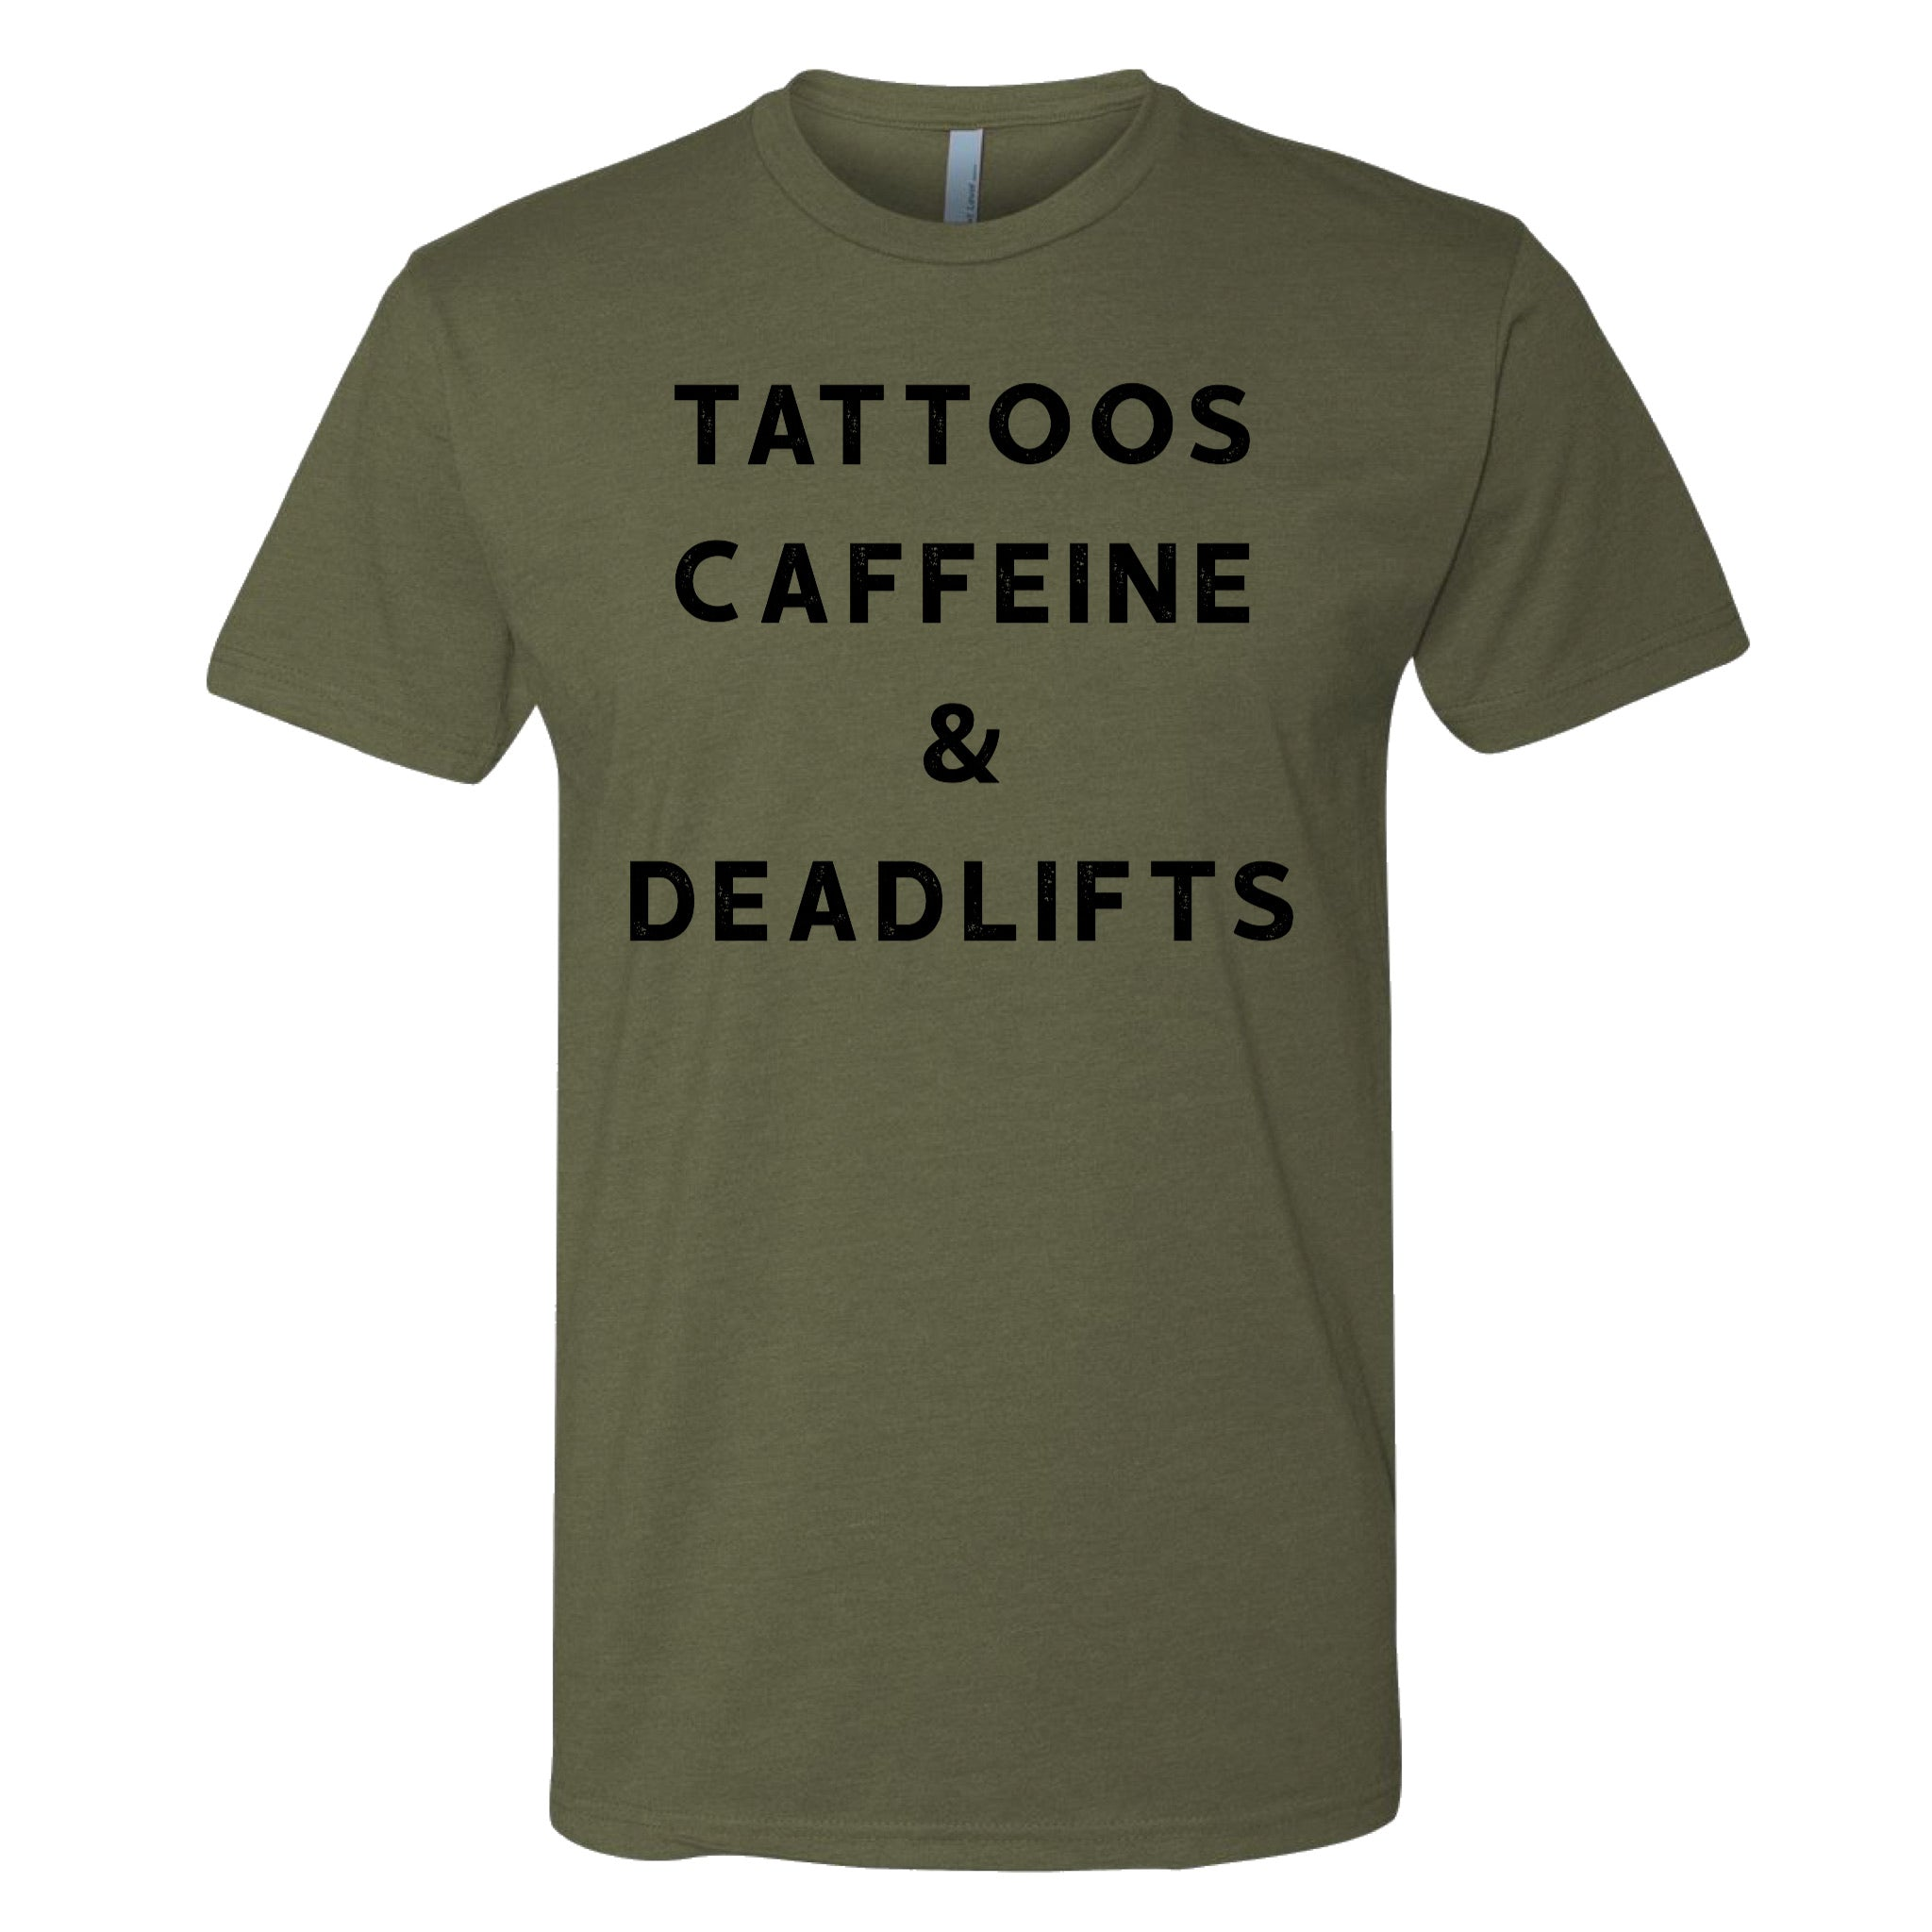 Tattoos, Caffeine, & Deadlifts